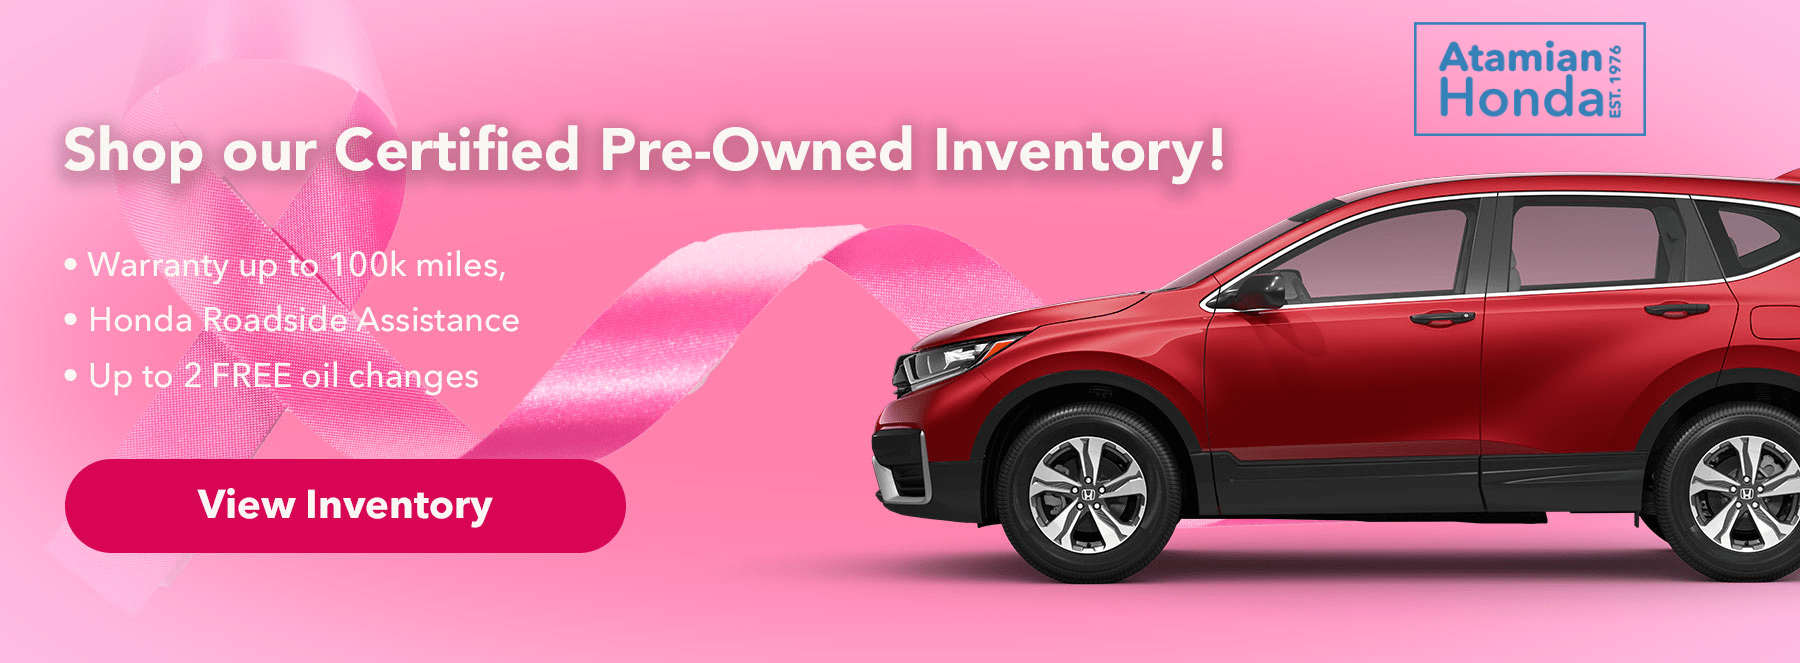 Shop our Certified Pre-Owned Inventory! Subtext: - Warranty up to 100k miles, - Honda Roadside Assistance, - Up to 2 FREE oil changes.